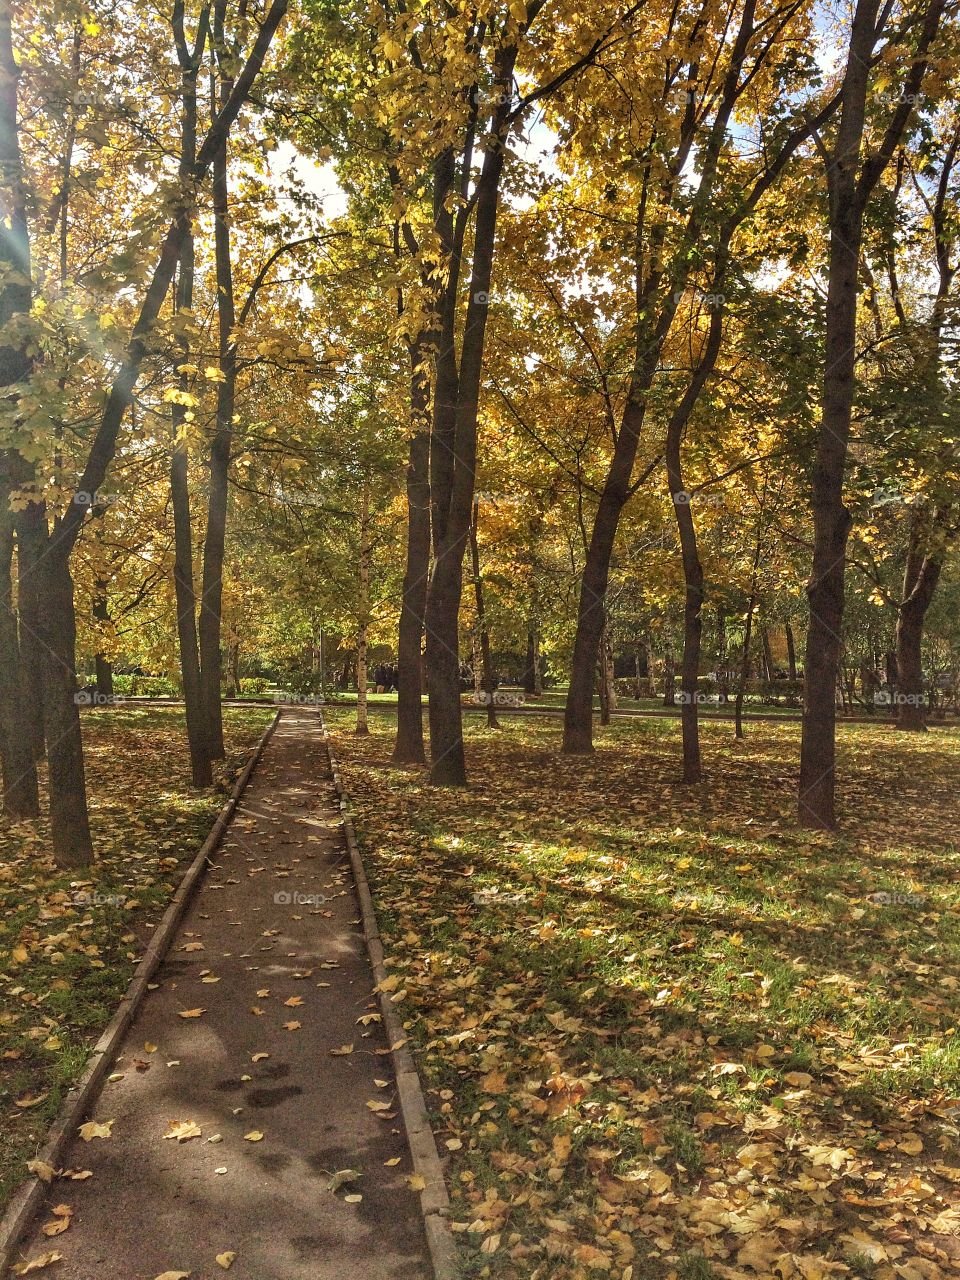 Strolling through the autumn park